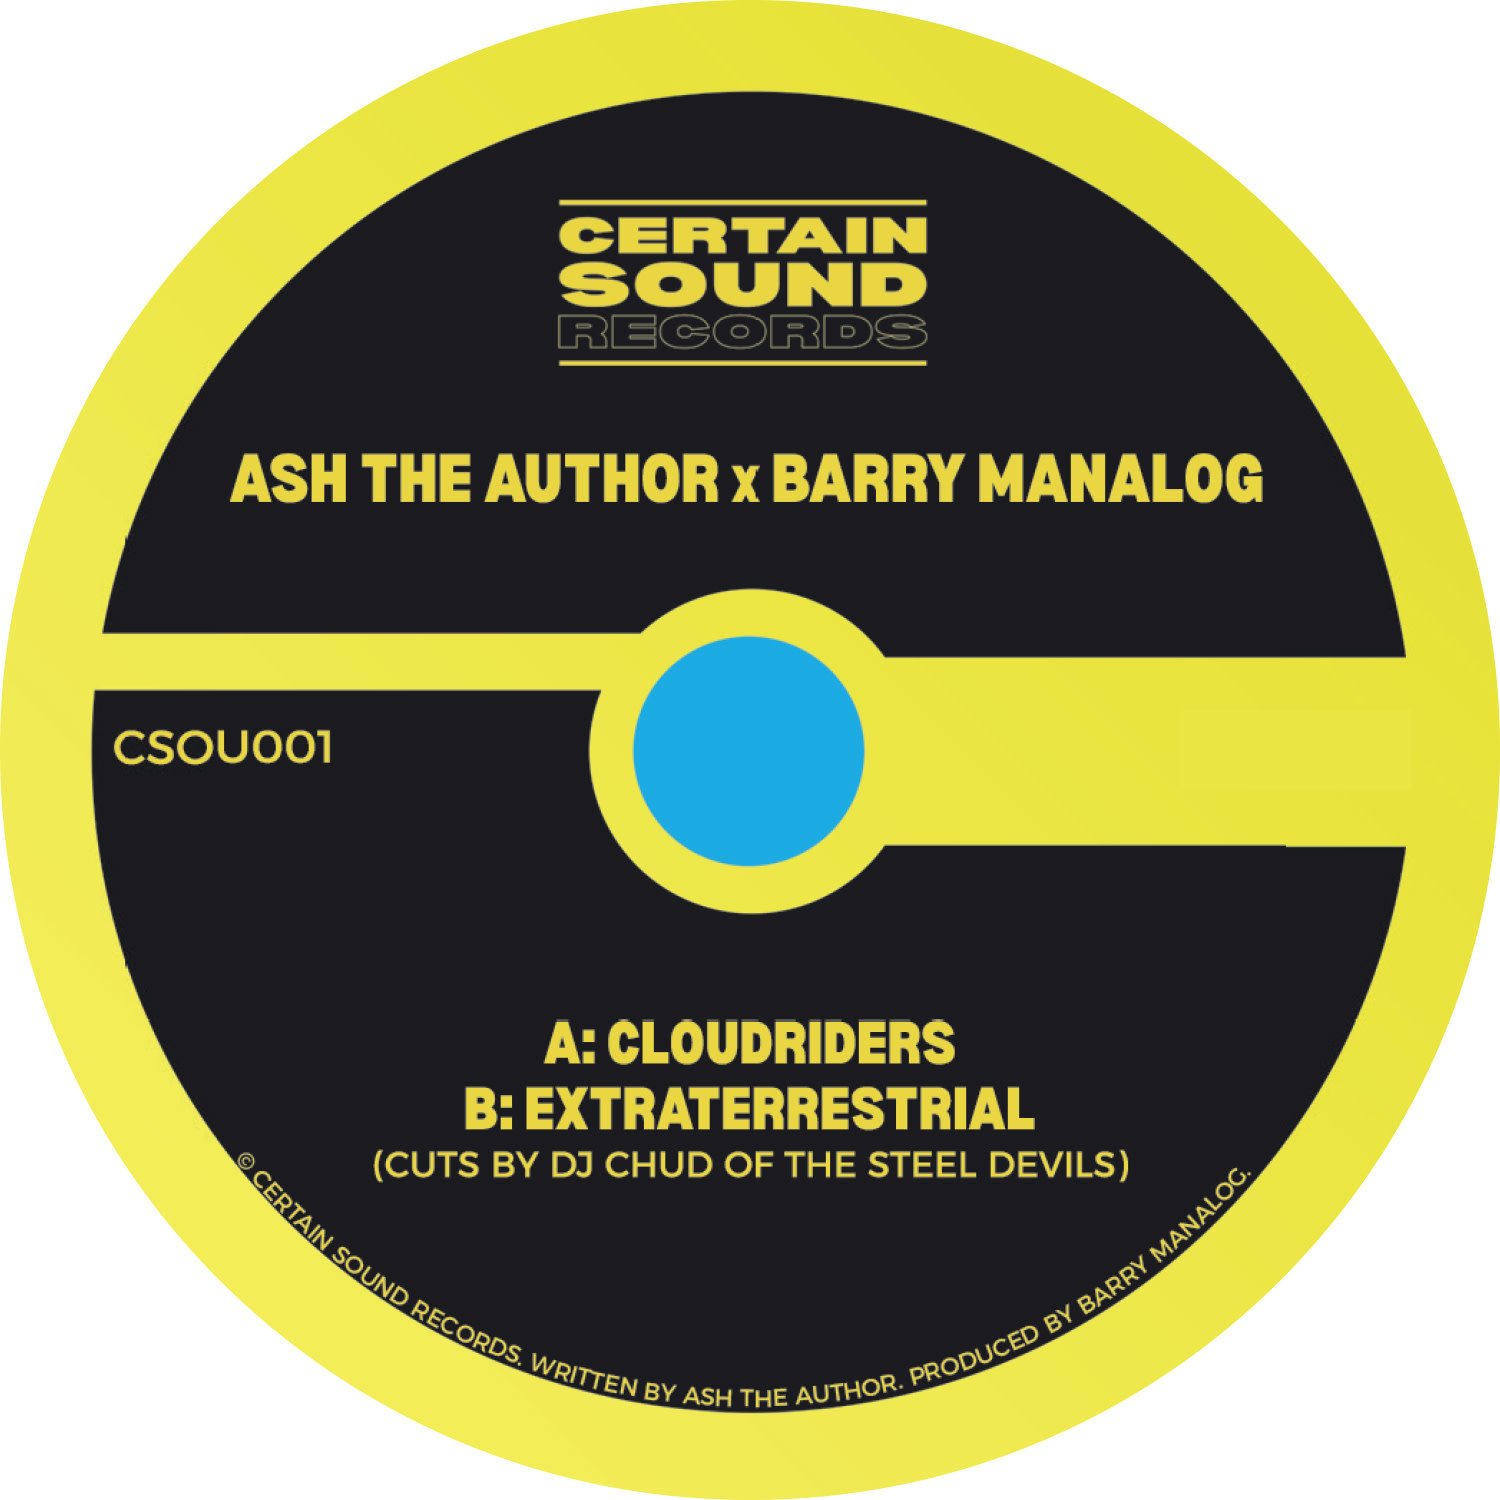 Certain Sound Records Ash The Author X Barry Manalog - Cloudriders / Extraterrestrial